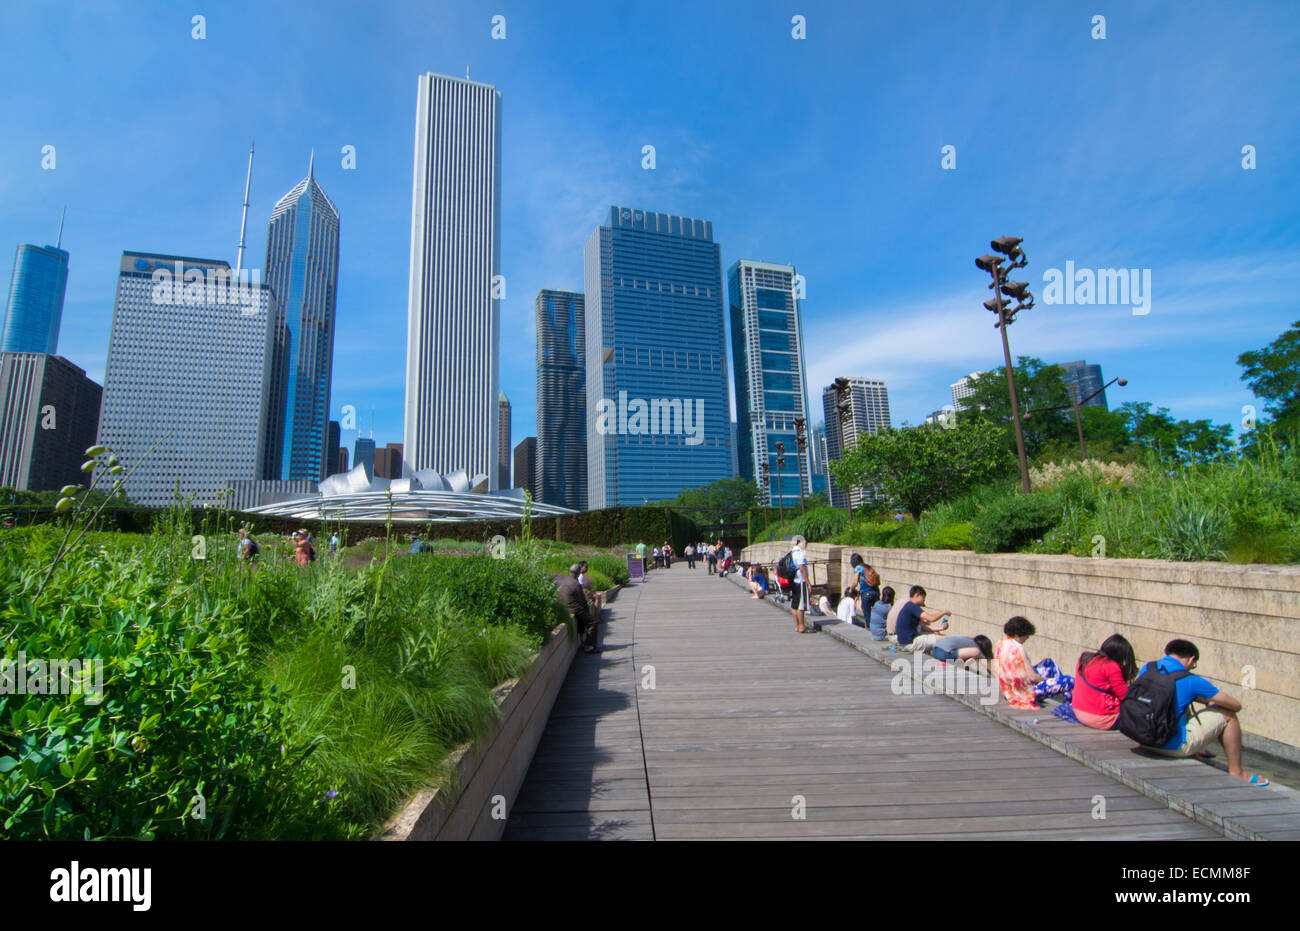 Chicago Illinois Millennium Park in Lurie Gardens with skyline in background skyscrapers in downtown Midwest city - Stock Image